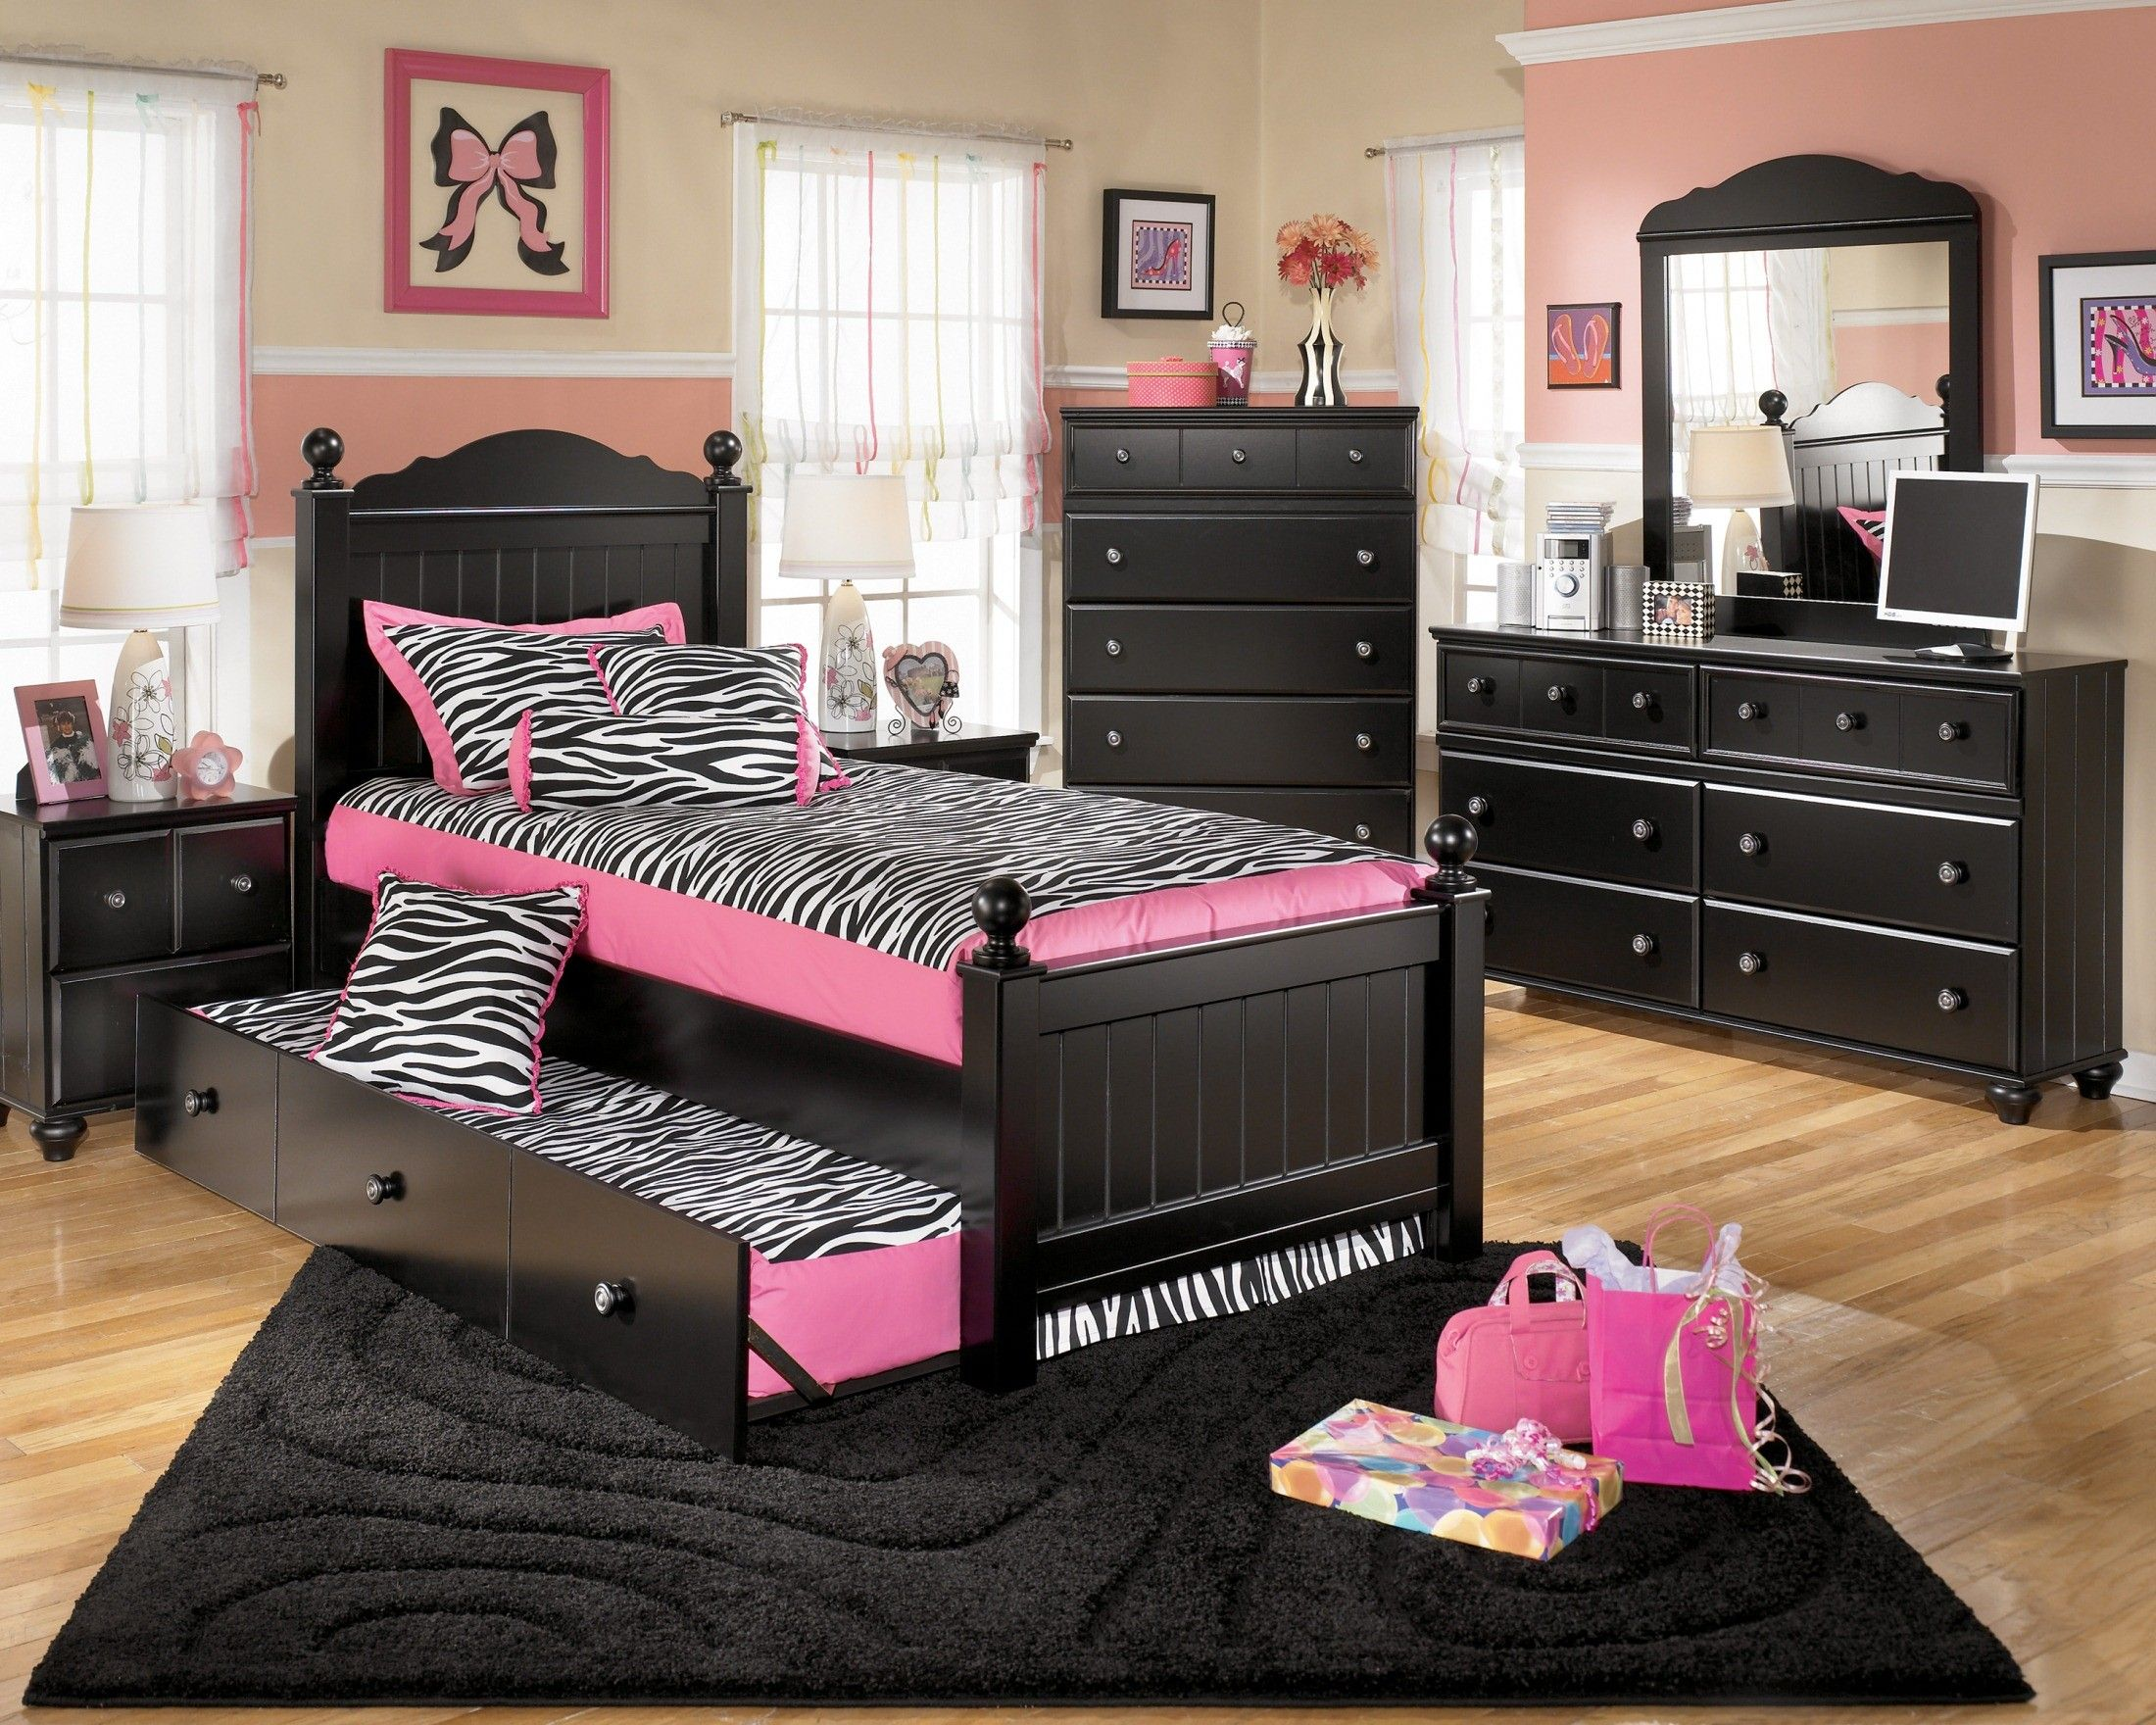 Bed sets for teenage girls zebra - Furniture Oak Based Material Bedroom Furniture For Your Total Coziness Buloffers